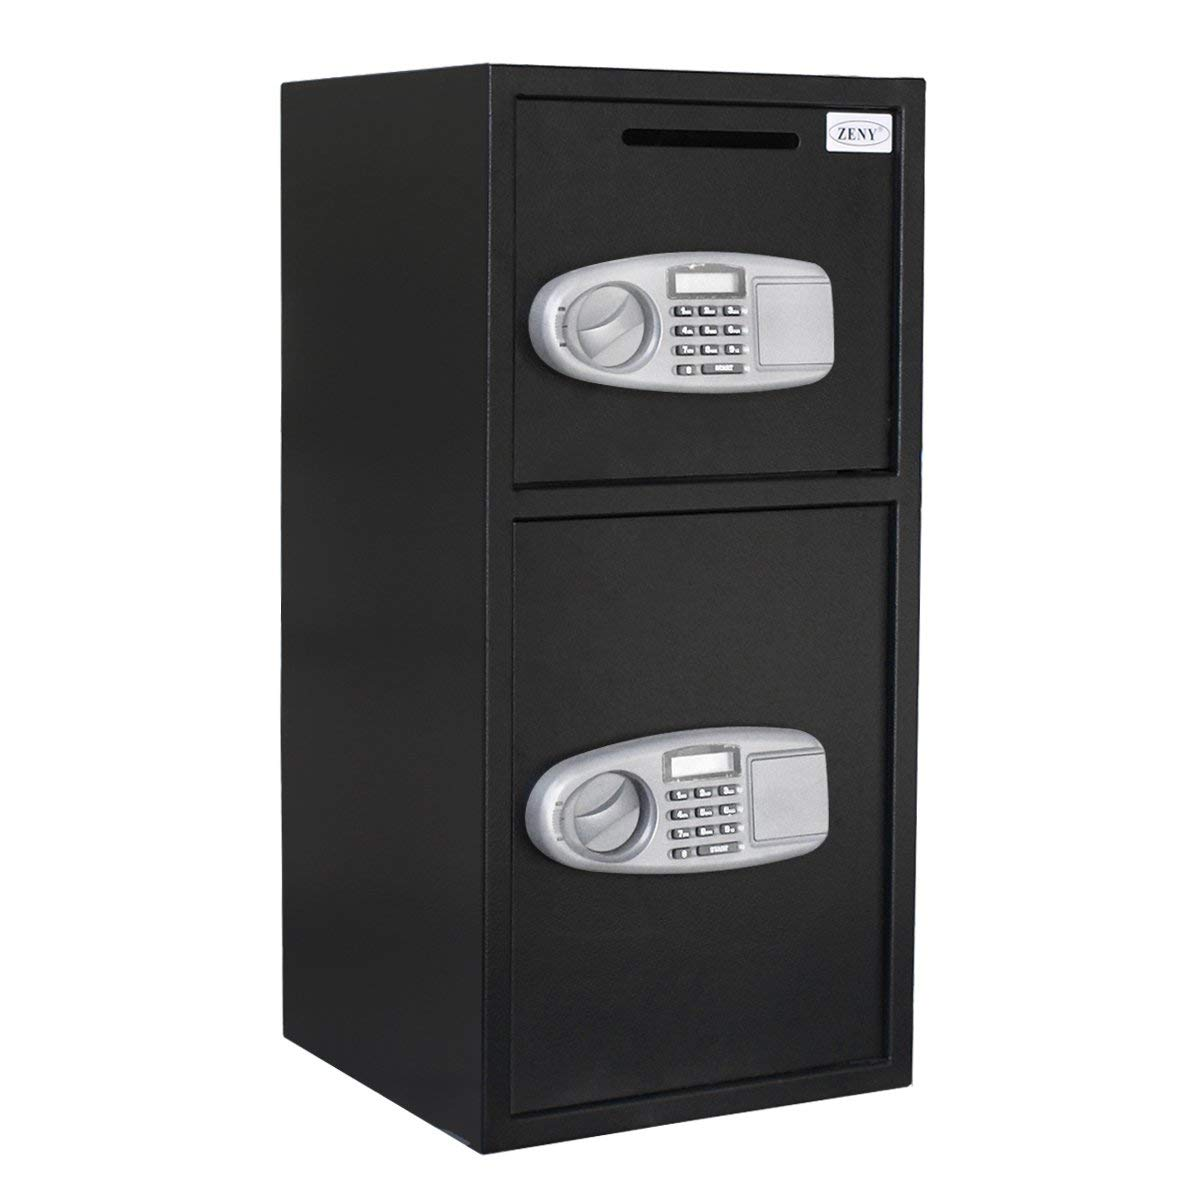 Zeny Zeny  Security Safe Box Double Door Depository Safe Steel Safe Box Digital Drop Safe Depository for Home Office Money Gun Jewelry